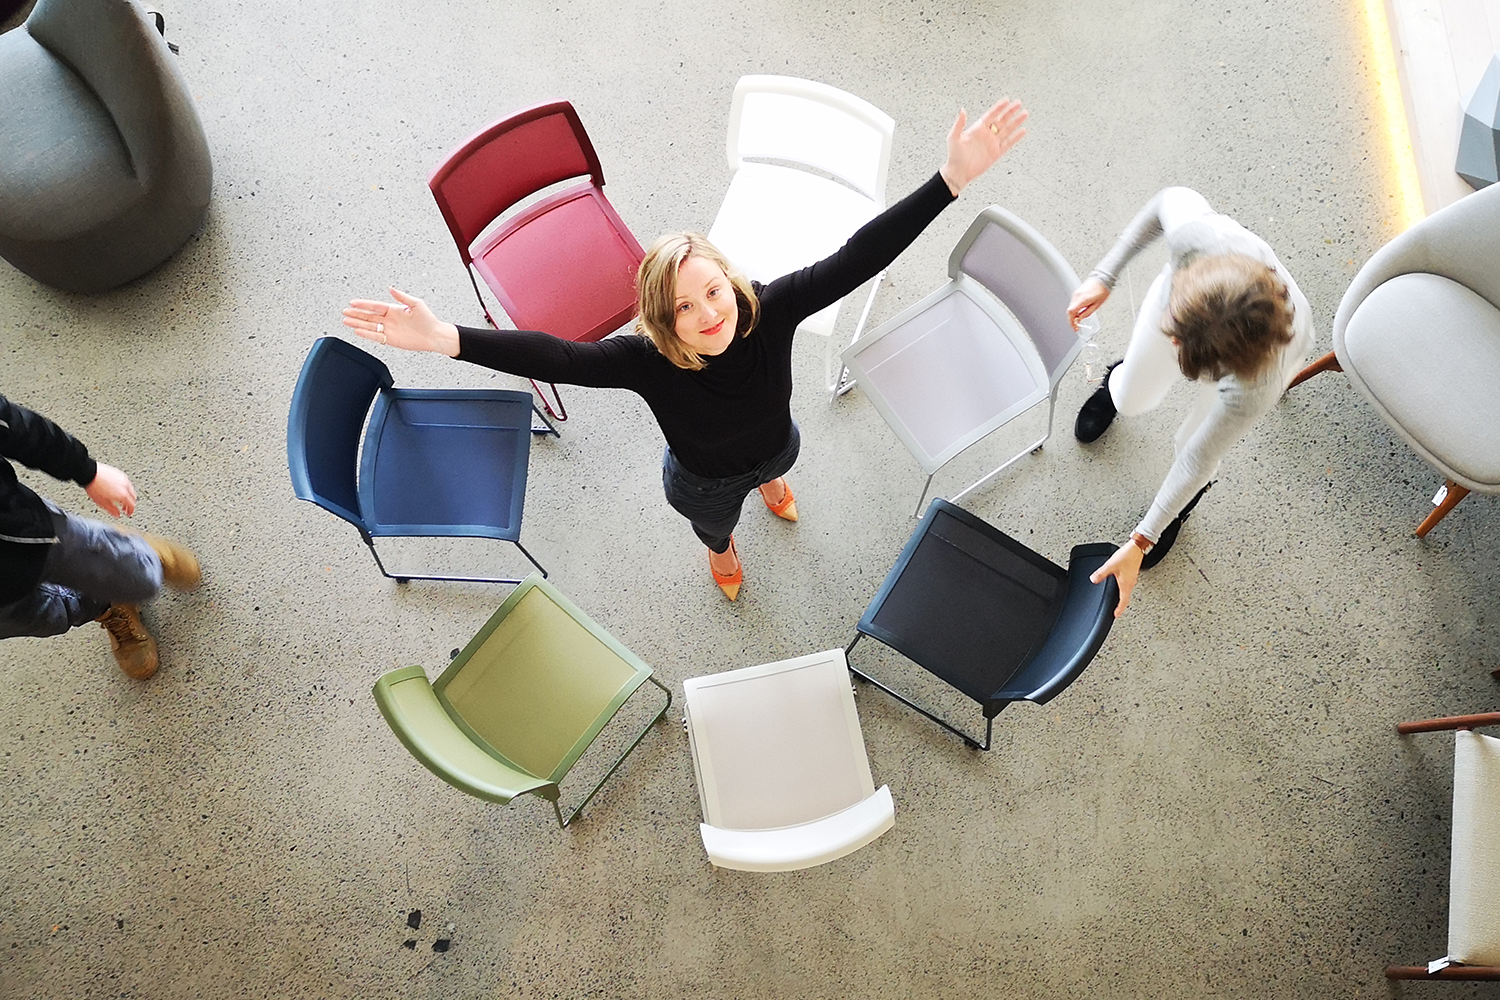 New and improved: The Tipo chair